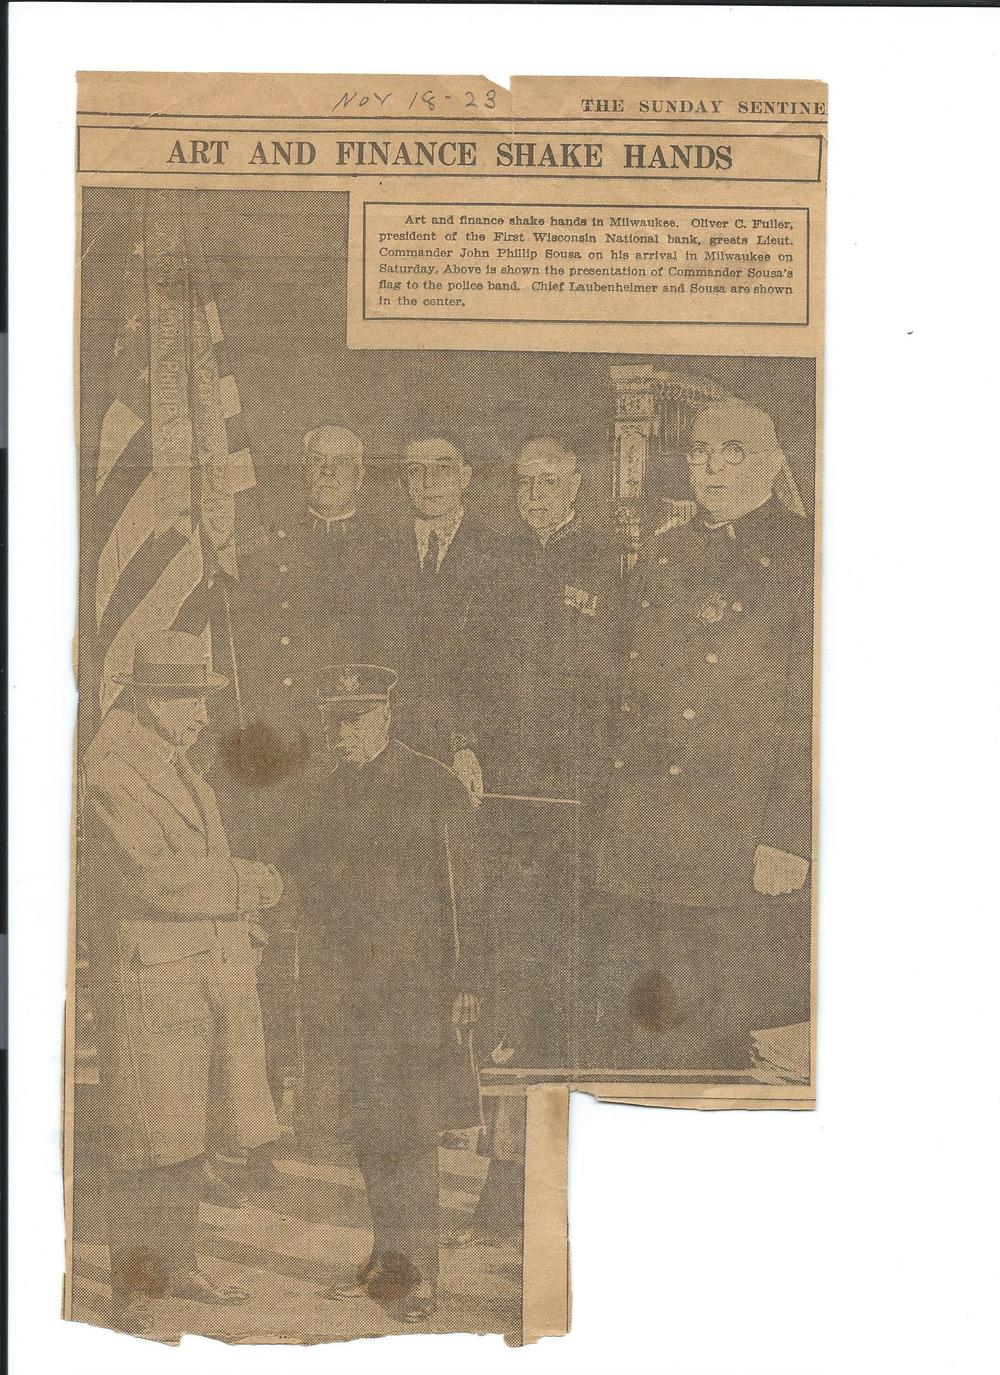 The flag and banner in this photograph are kept in the display case at the Police Academy in front of the band room.  This article was printed in the Sentinel on November 18, 1923.